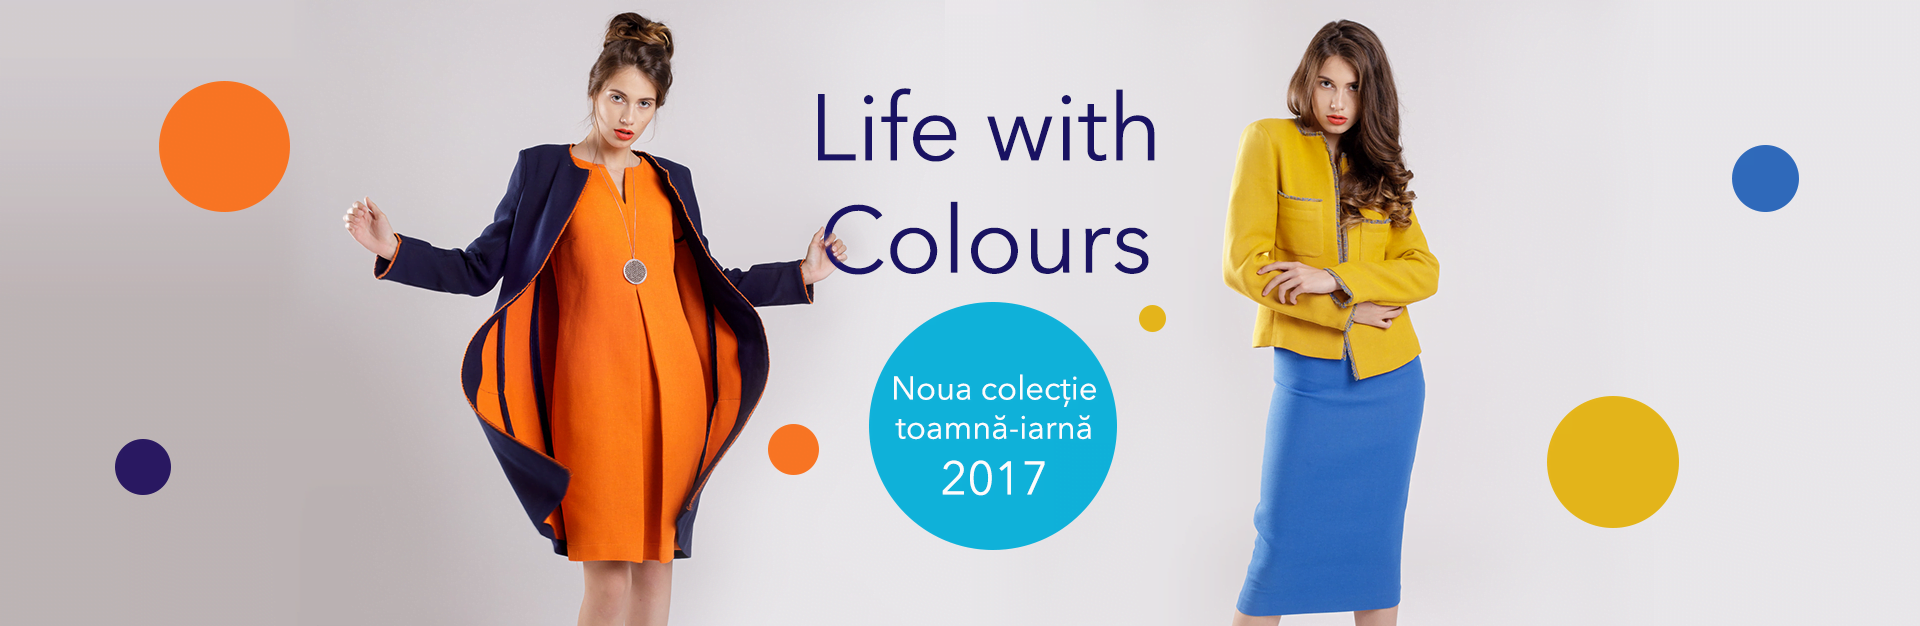 Couture de Marie Life With Colours